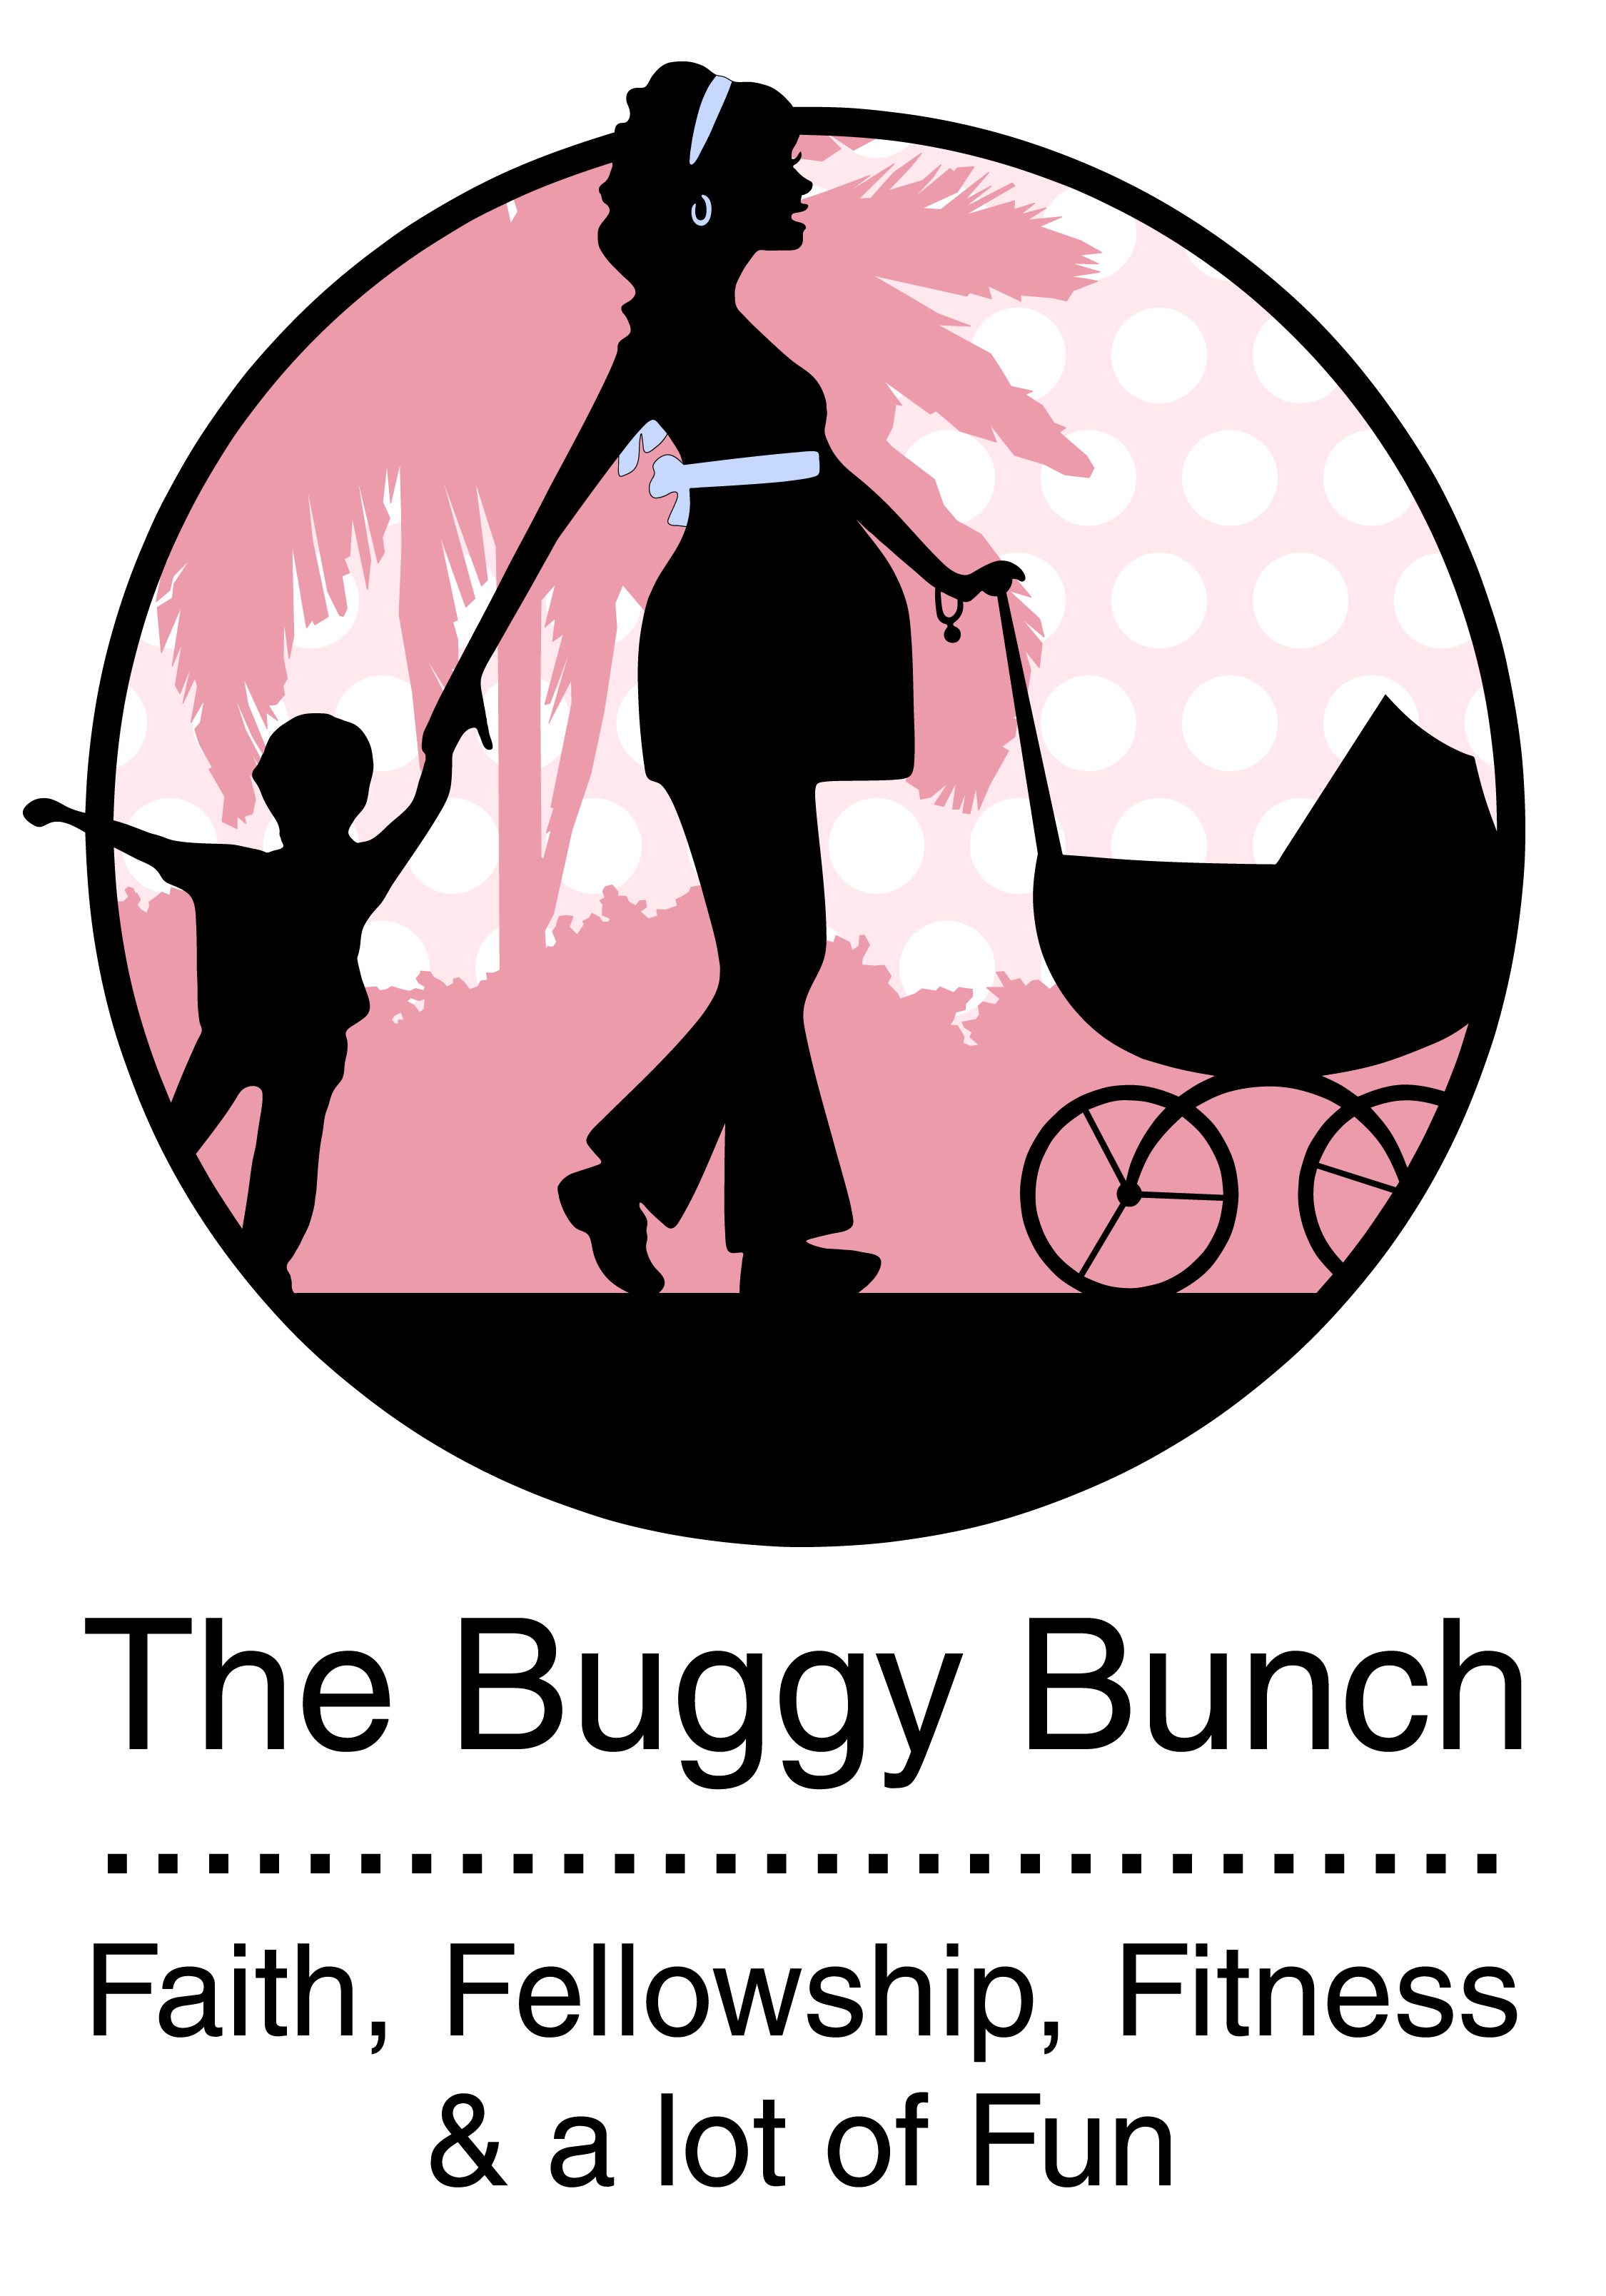 The Buggy Bunch